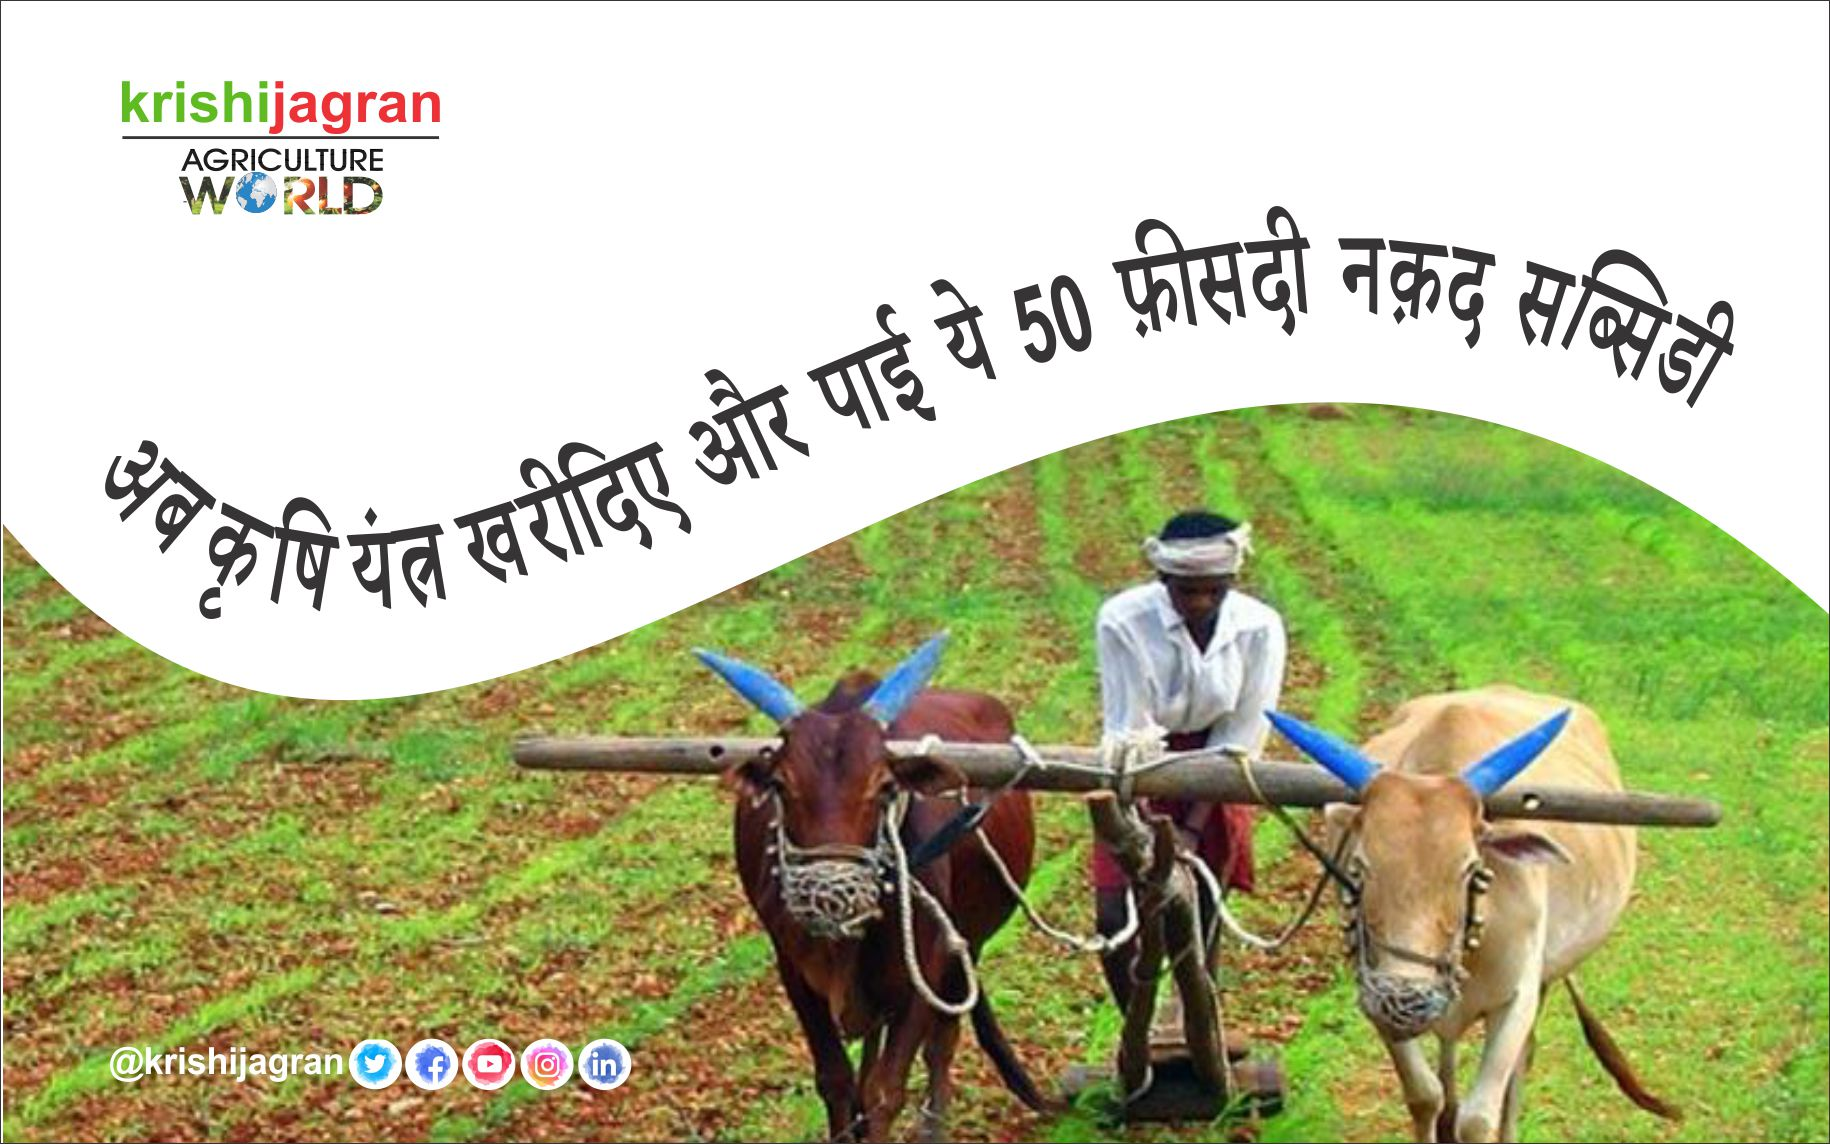 Now buy agricultural equipment and get 50 percent cash subsidy